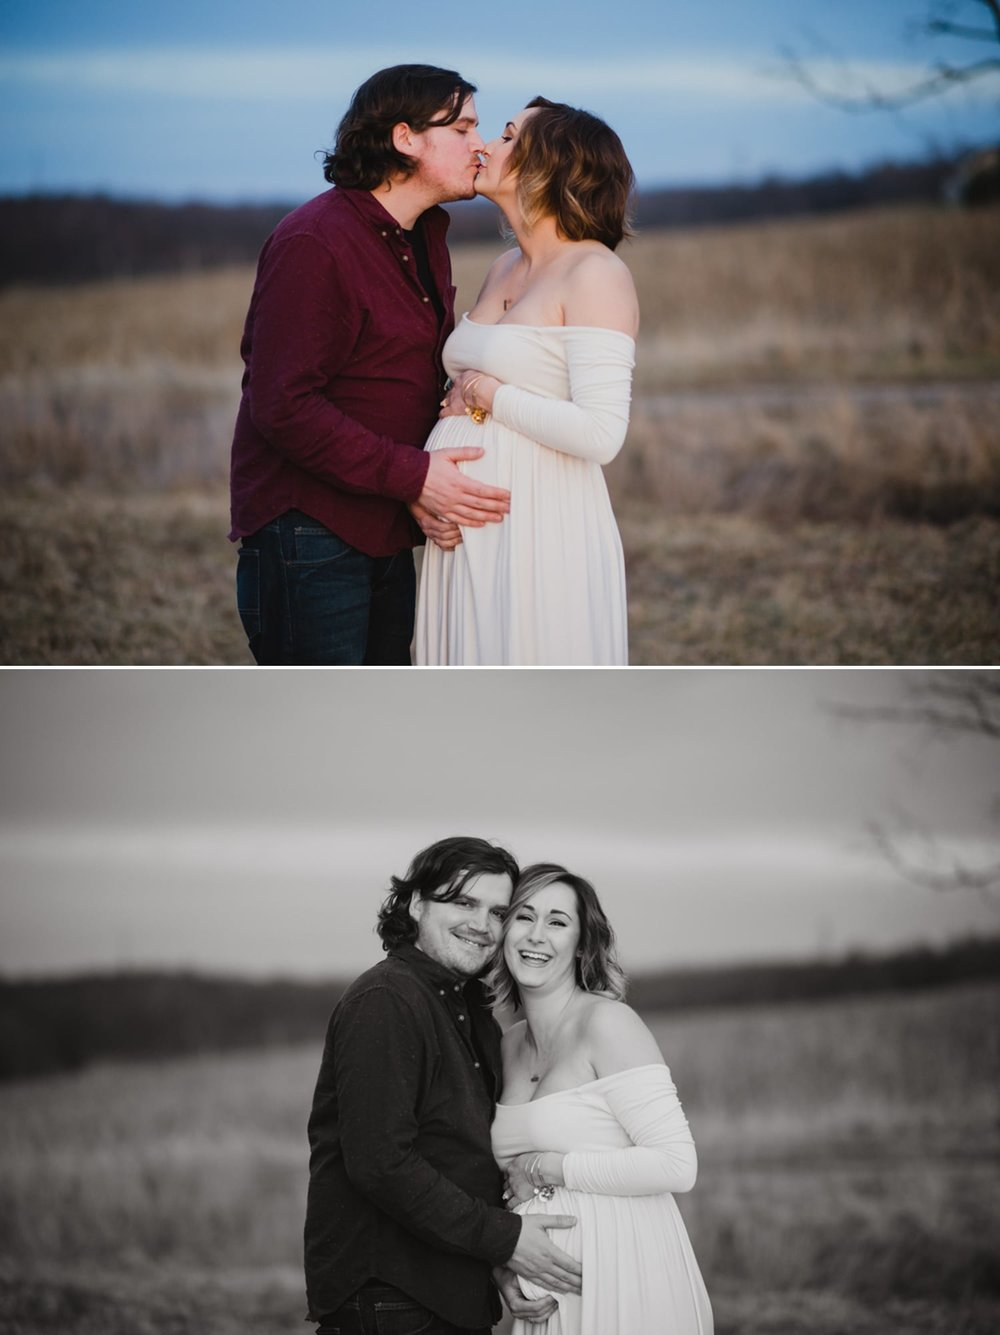 Rachel Canton Ohio Maternity Session 11.jpg